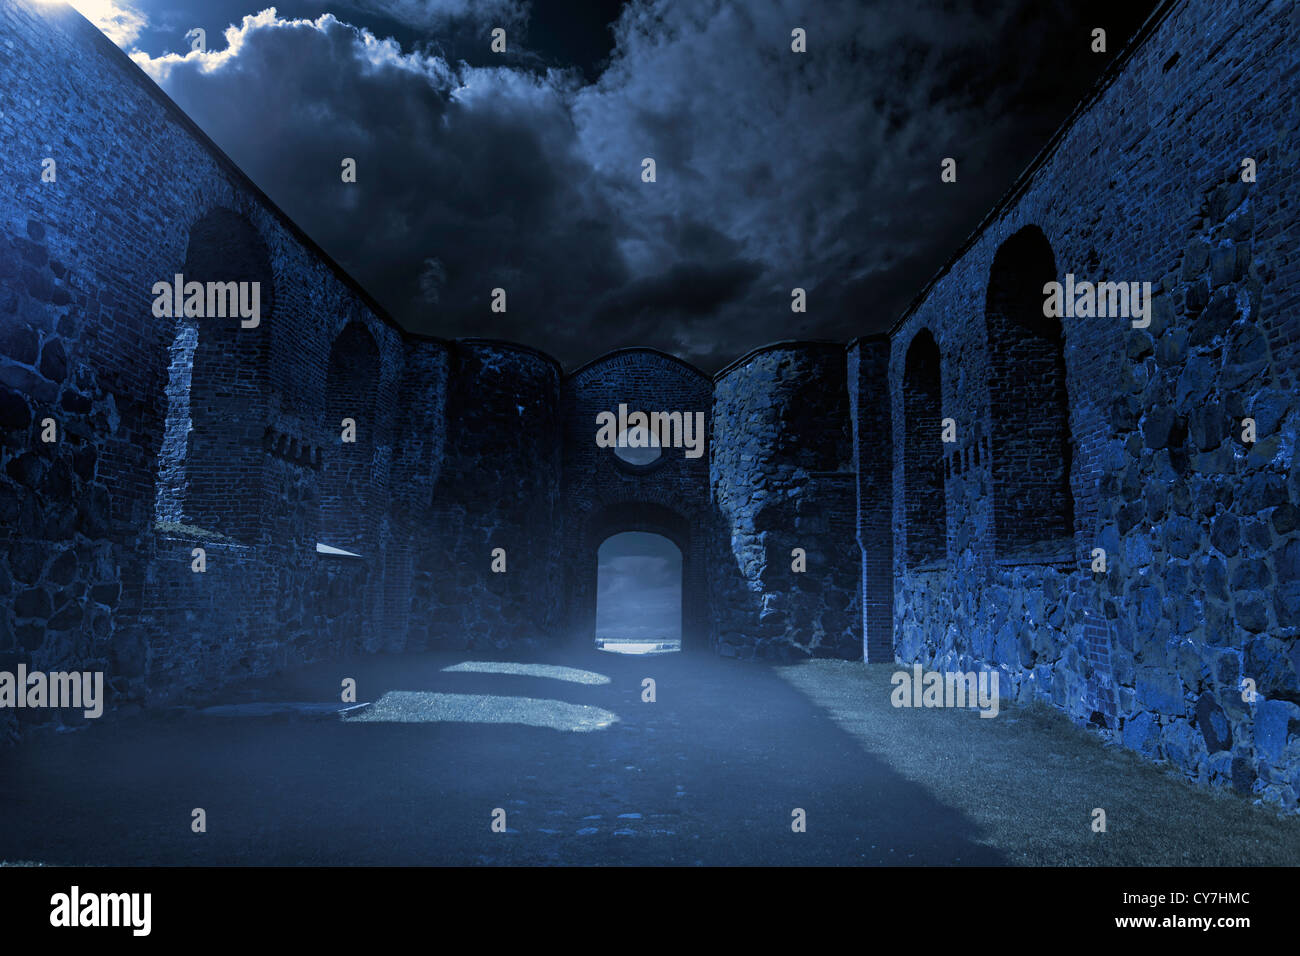 Old ruins on a spooky night. - Stock Image